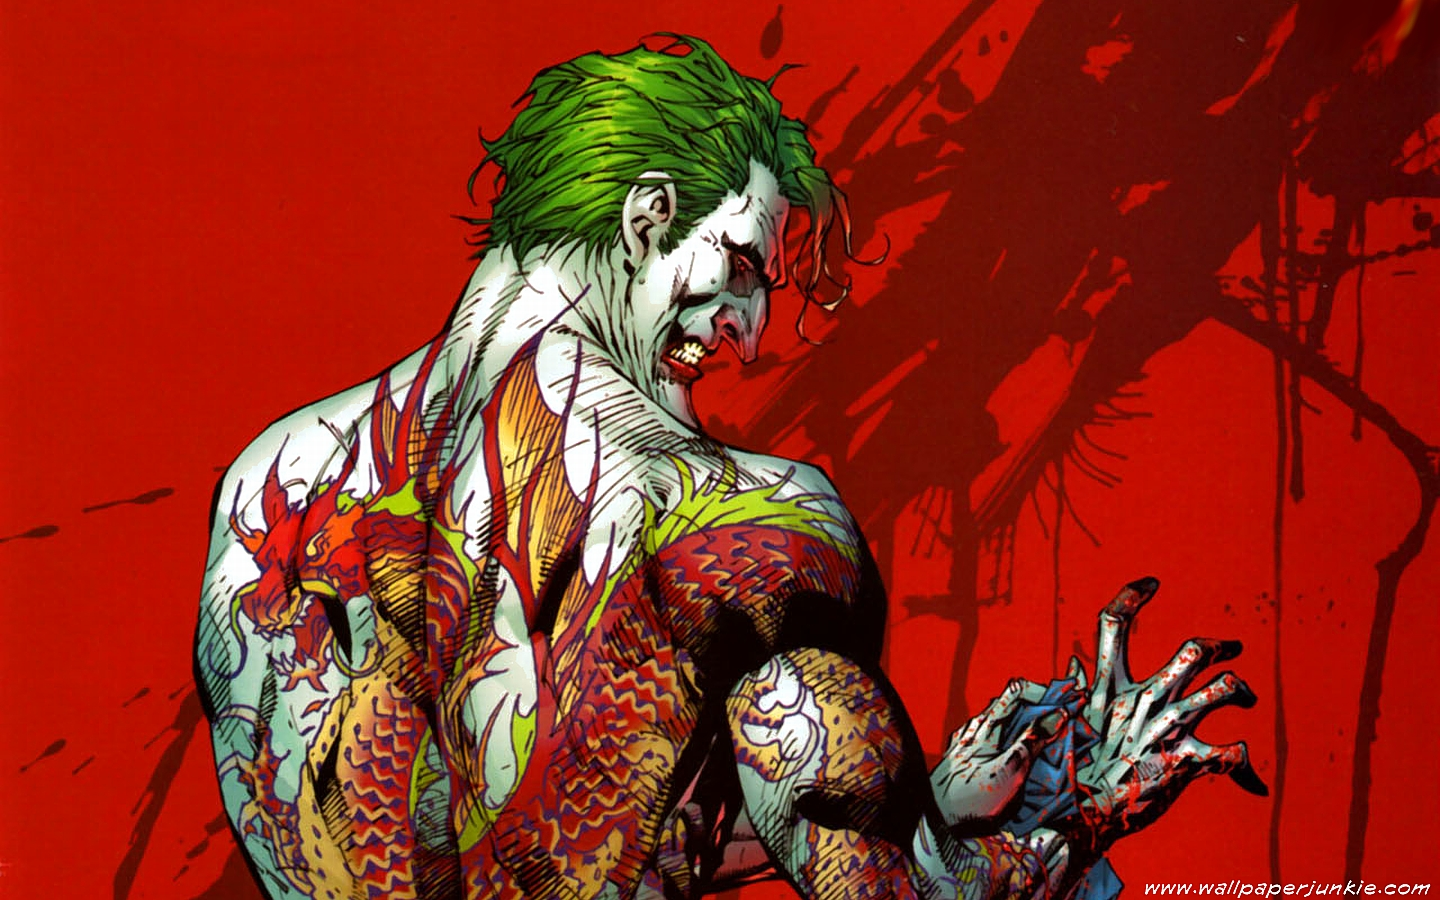 1440x900 joker hd wallpaper wallpapersafari for Joker immagini hd